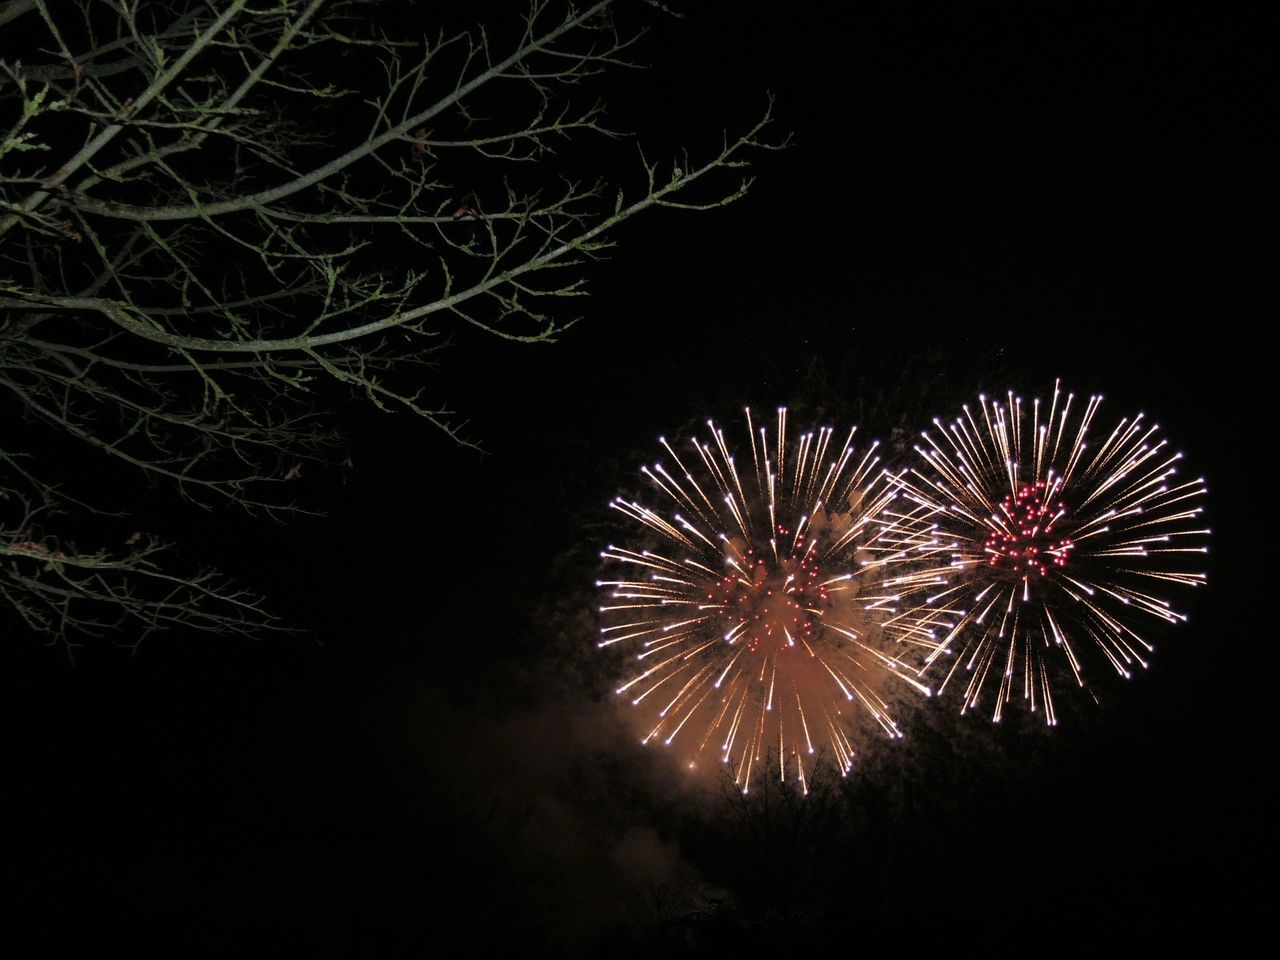 night, firework display, firework - man made object, no people, celebration, low angle view, long exposure, outdoors, illuminated, sky, animal themes